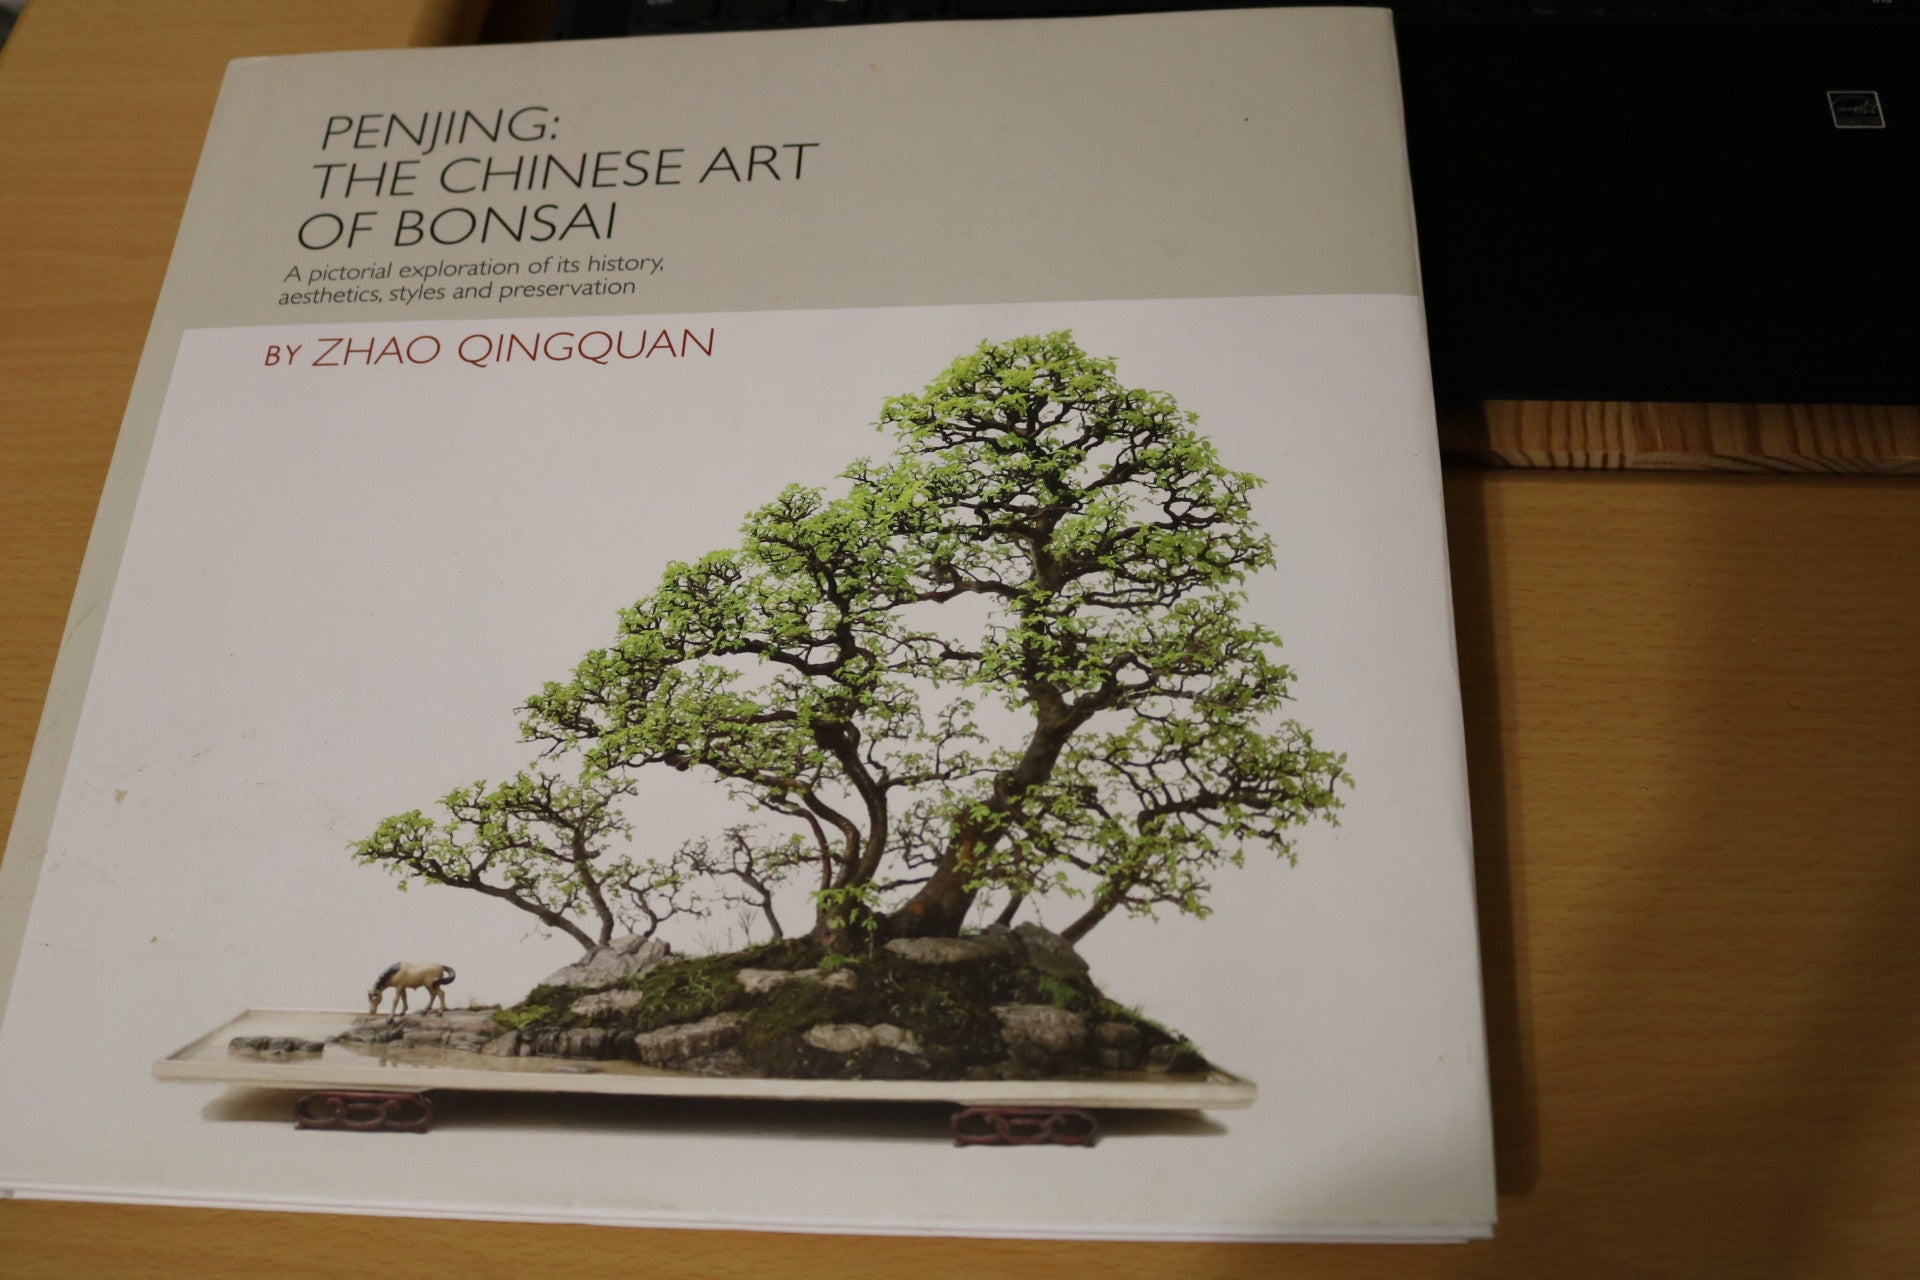 Penjing: The Chinese Art of Bonsai by Zhao Qing Quan